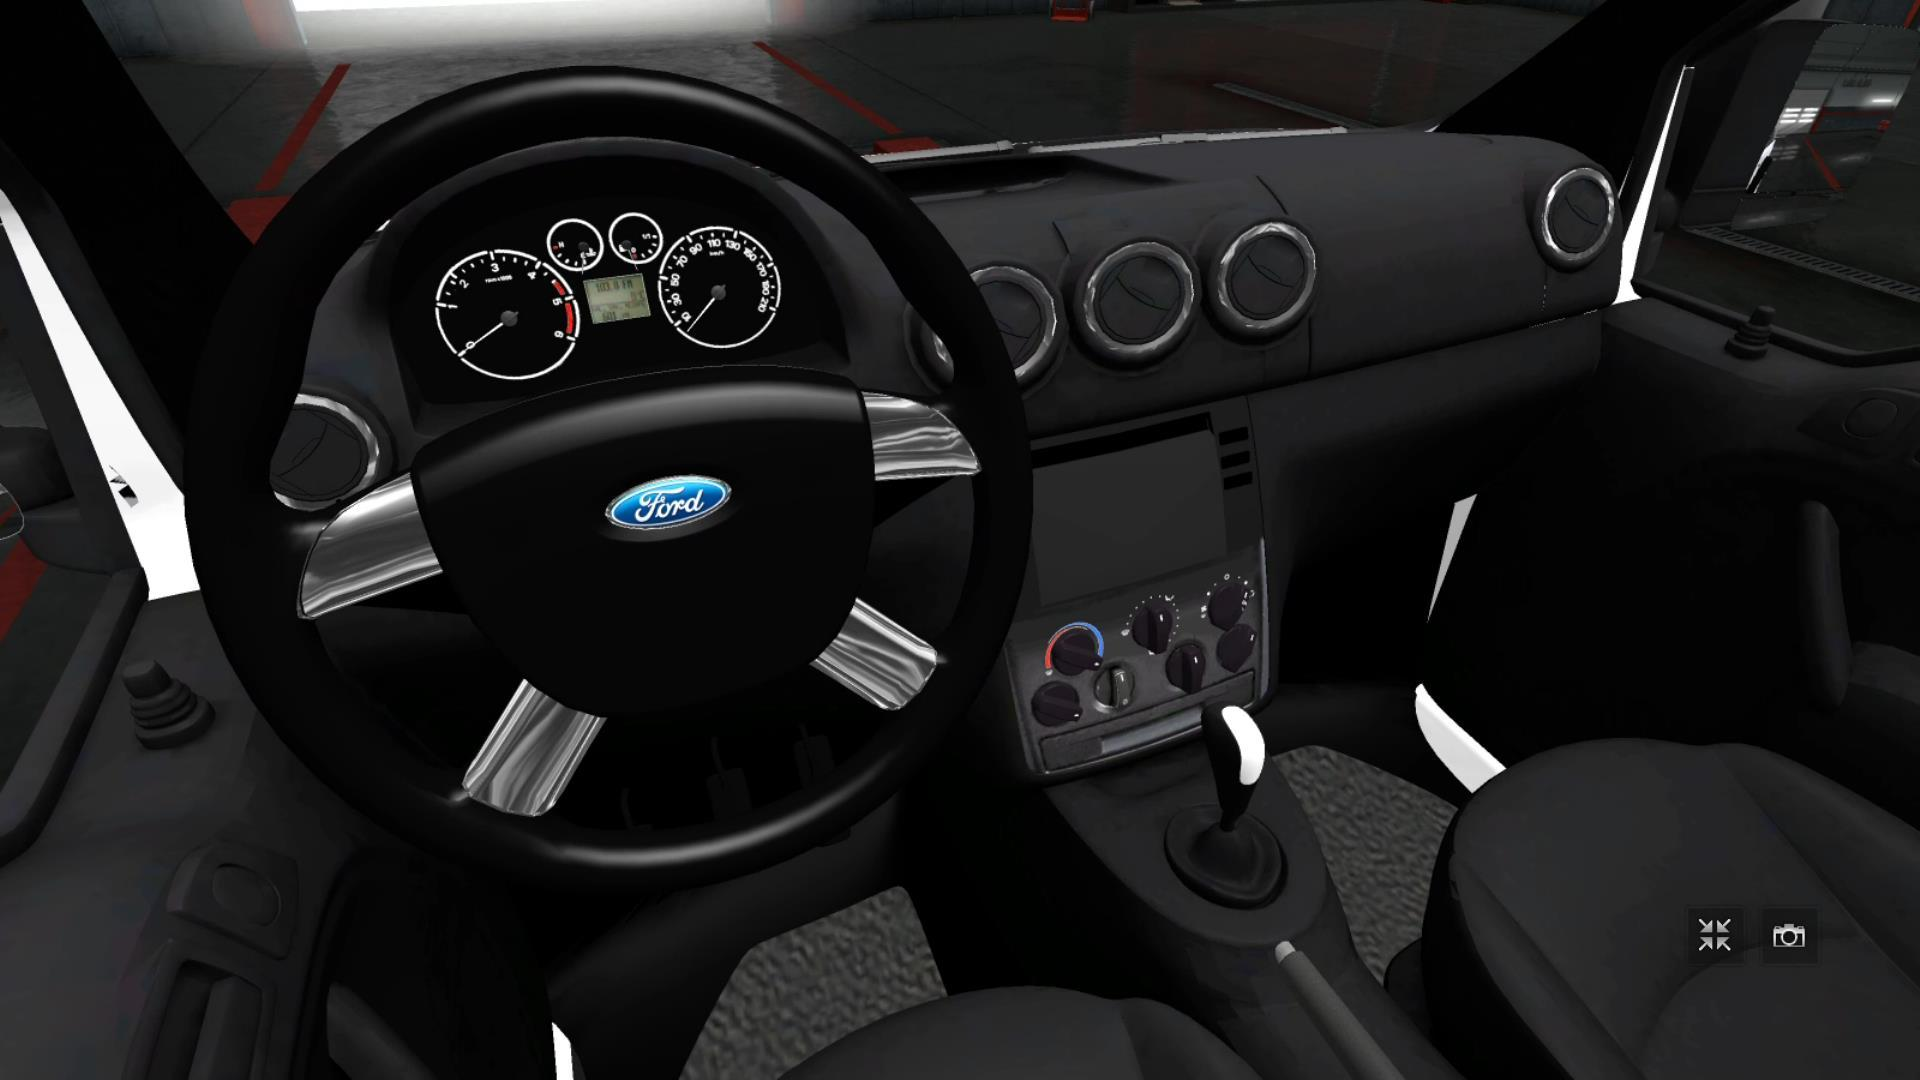 FORD TOURNEO CONNECT V1.0 CAR MOD -Euro Truck Simulator 2 Mods